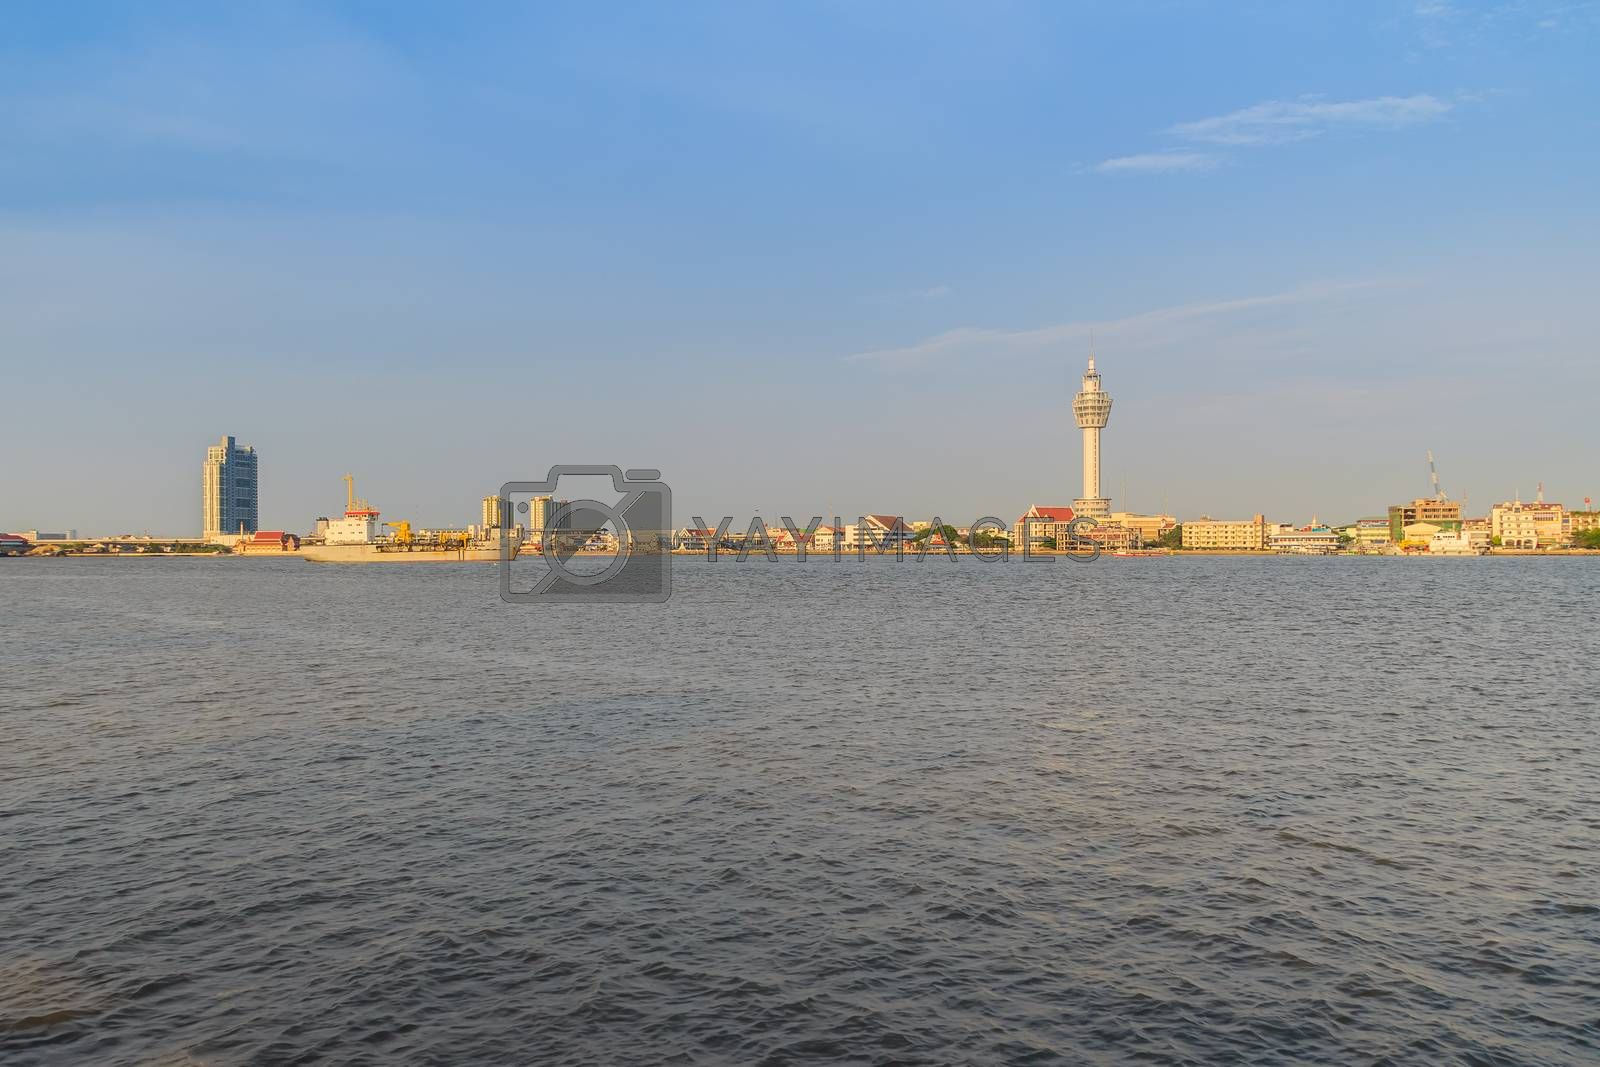 Riverfront view of Samut Prakan city hall with new observation tower and boat pier. Samut Prakan is at the mouth of the Chao Phraya River on Gulf of Thailand.